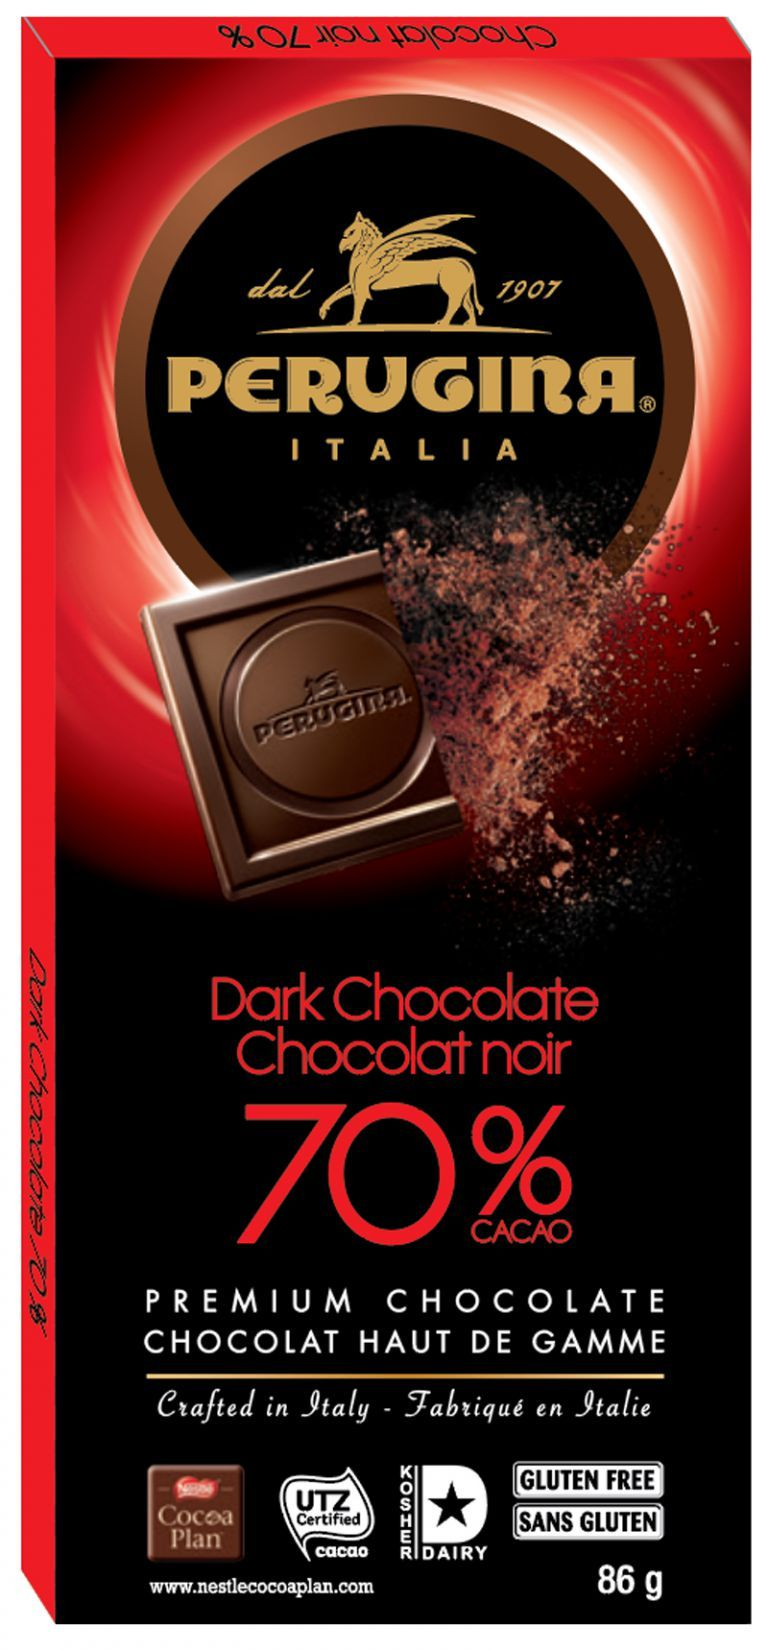 Perugina 70% Dark Chocolate Tablet 86g